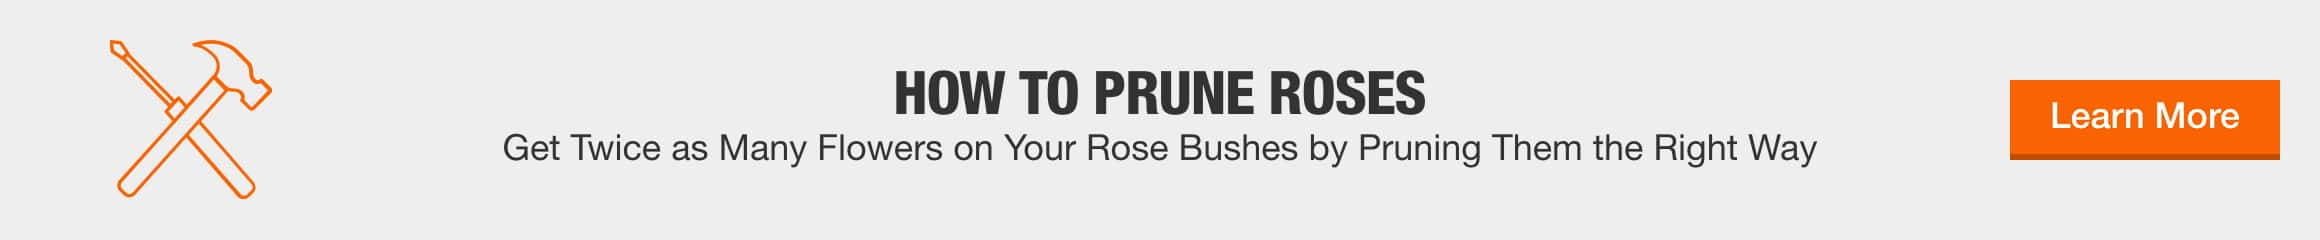 HOW TO PRUNE ROSES Get Twice as Many Flowers on Your Rose Bushes by Pruning Them the Right Way